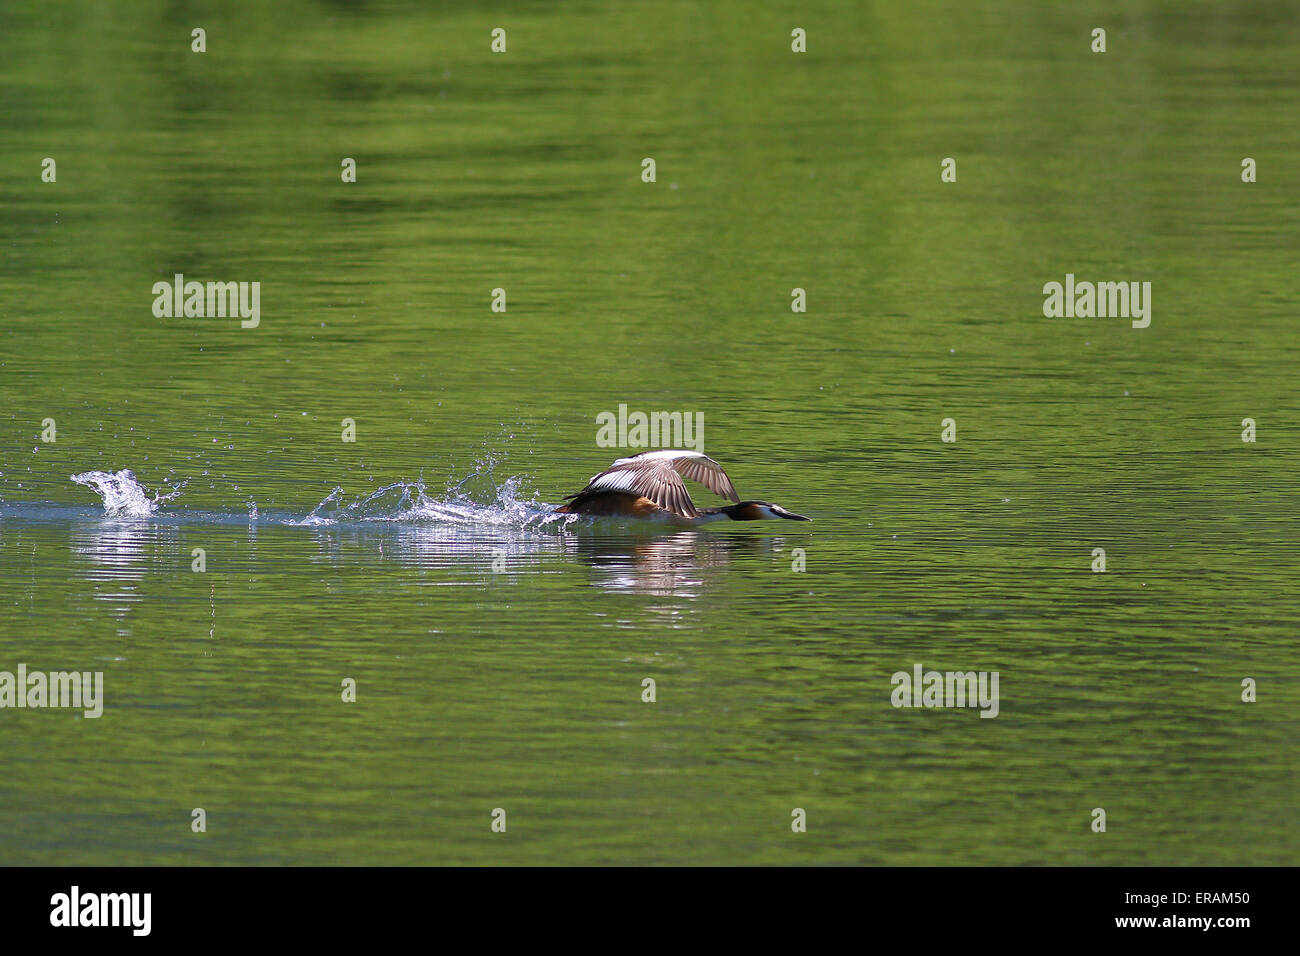 Great crested grebes displaying aggressive behavior and chasing - Stock Image